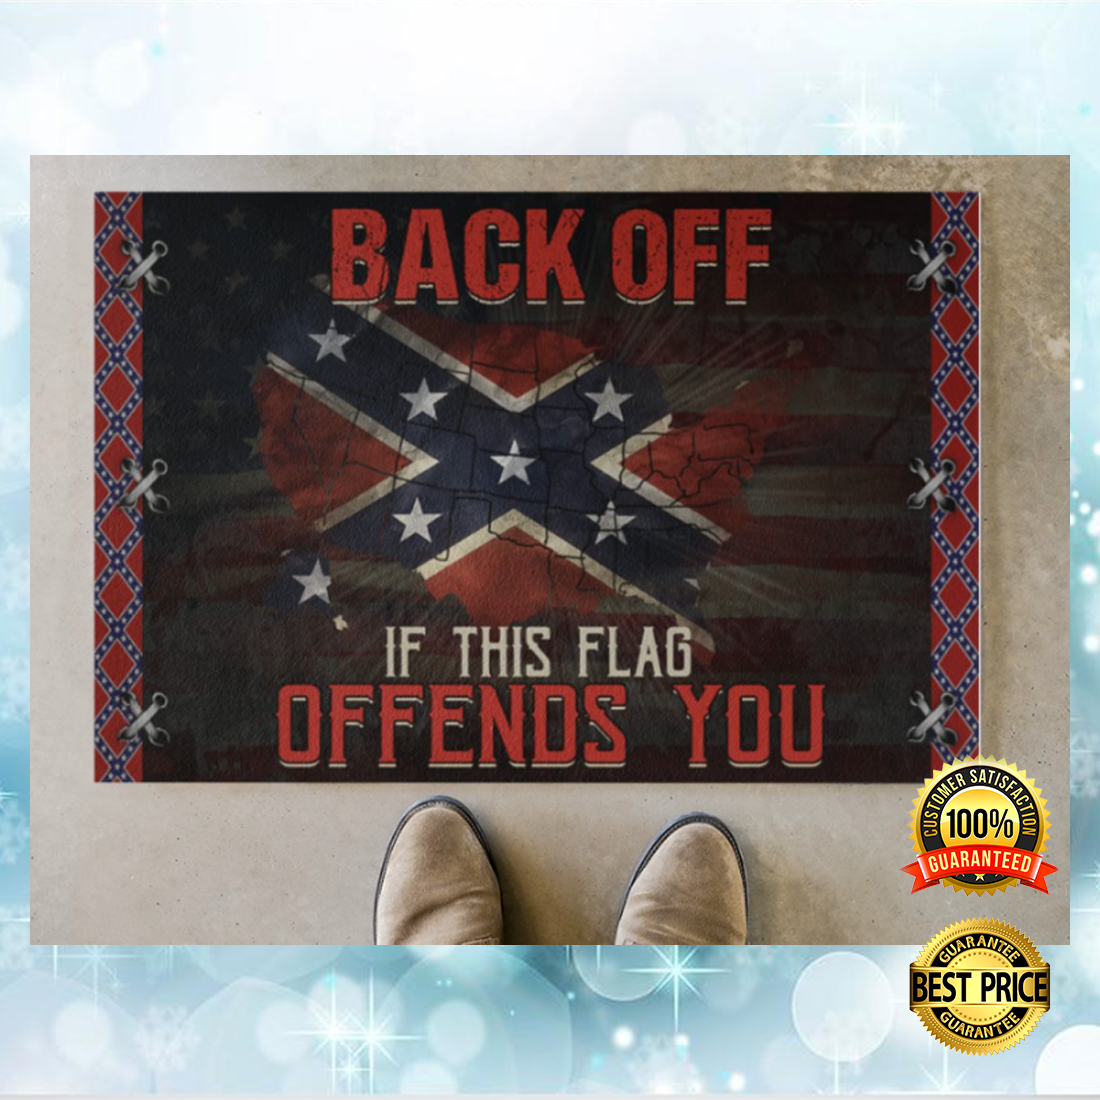 Confederate flag back off if this flag offends you doormat 4